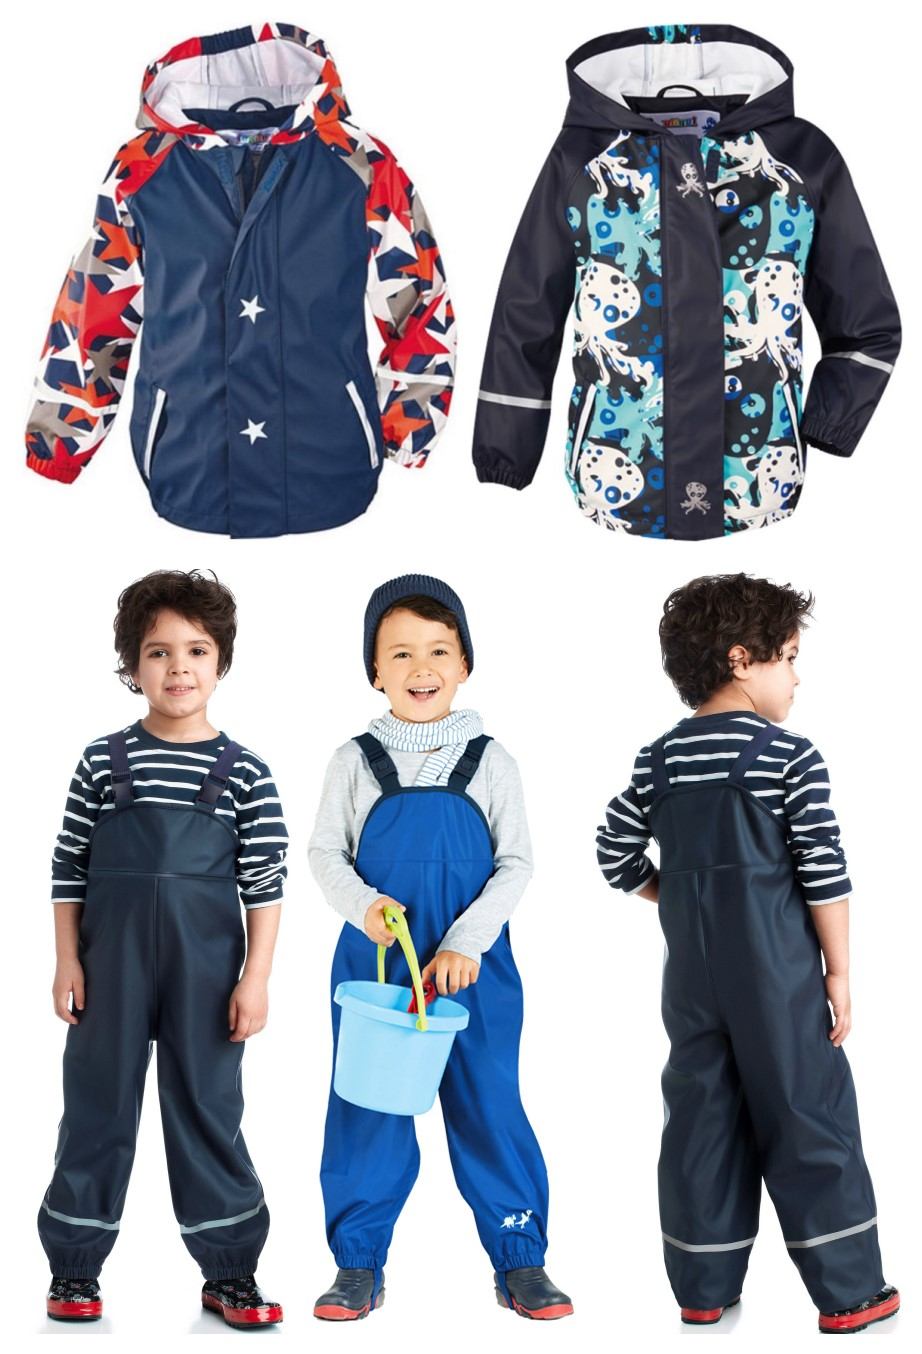 Spring, summer and autumn boys and girls children PU leather poncho raincoat waterproof windproof outdoor jacket + pants suit pu leather and corduroy spliced zip up down jacket